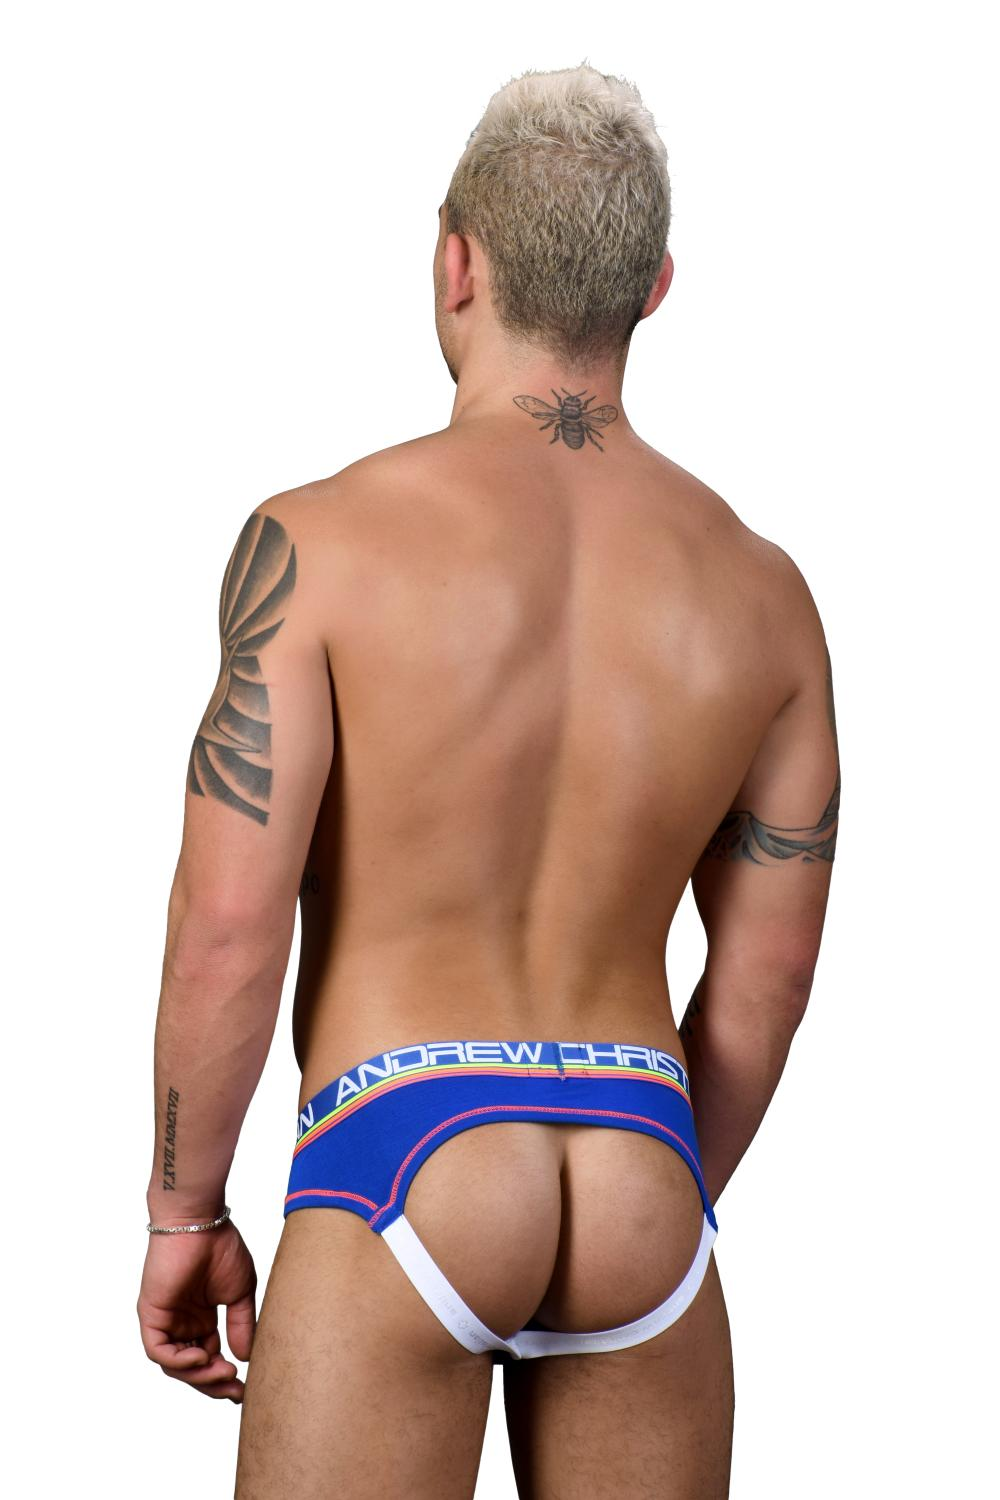 CoolFlex Modal Locker Room Jockstrap ANDREW CHRISTIAN s Pushup kapsou Show-It Royal4